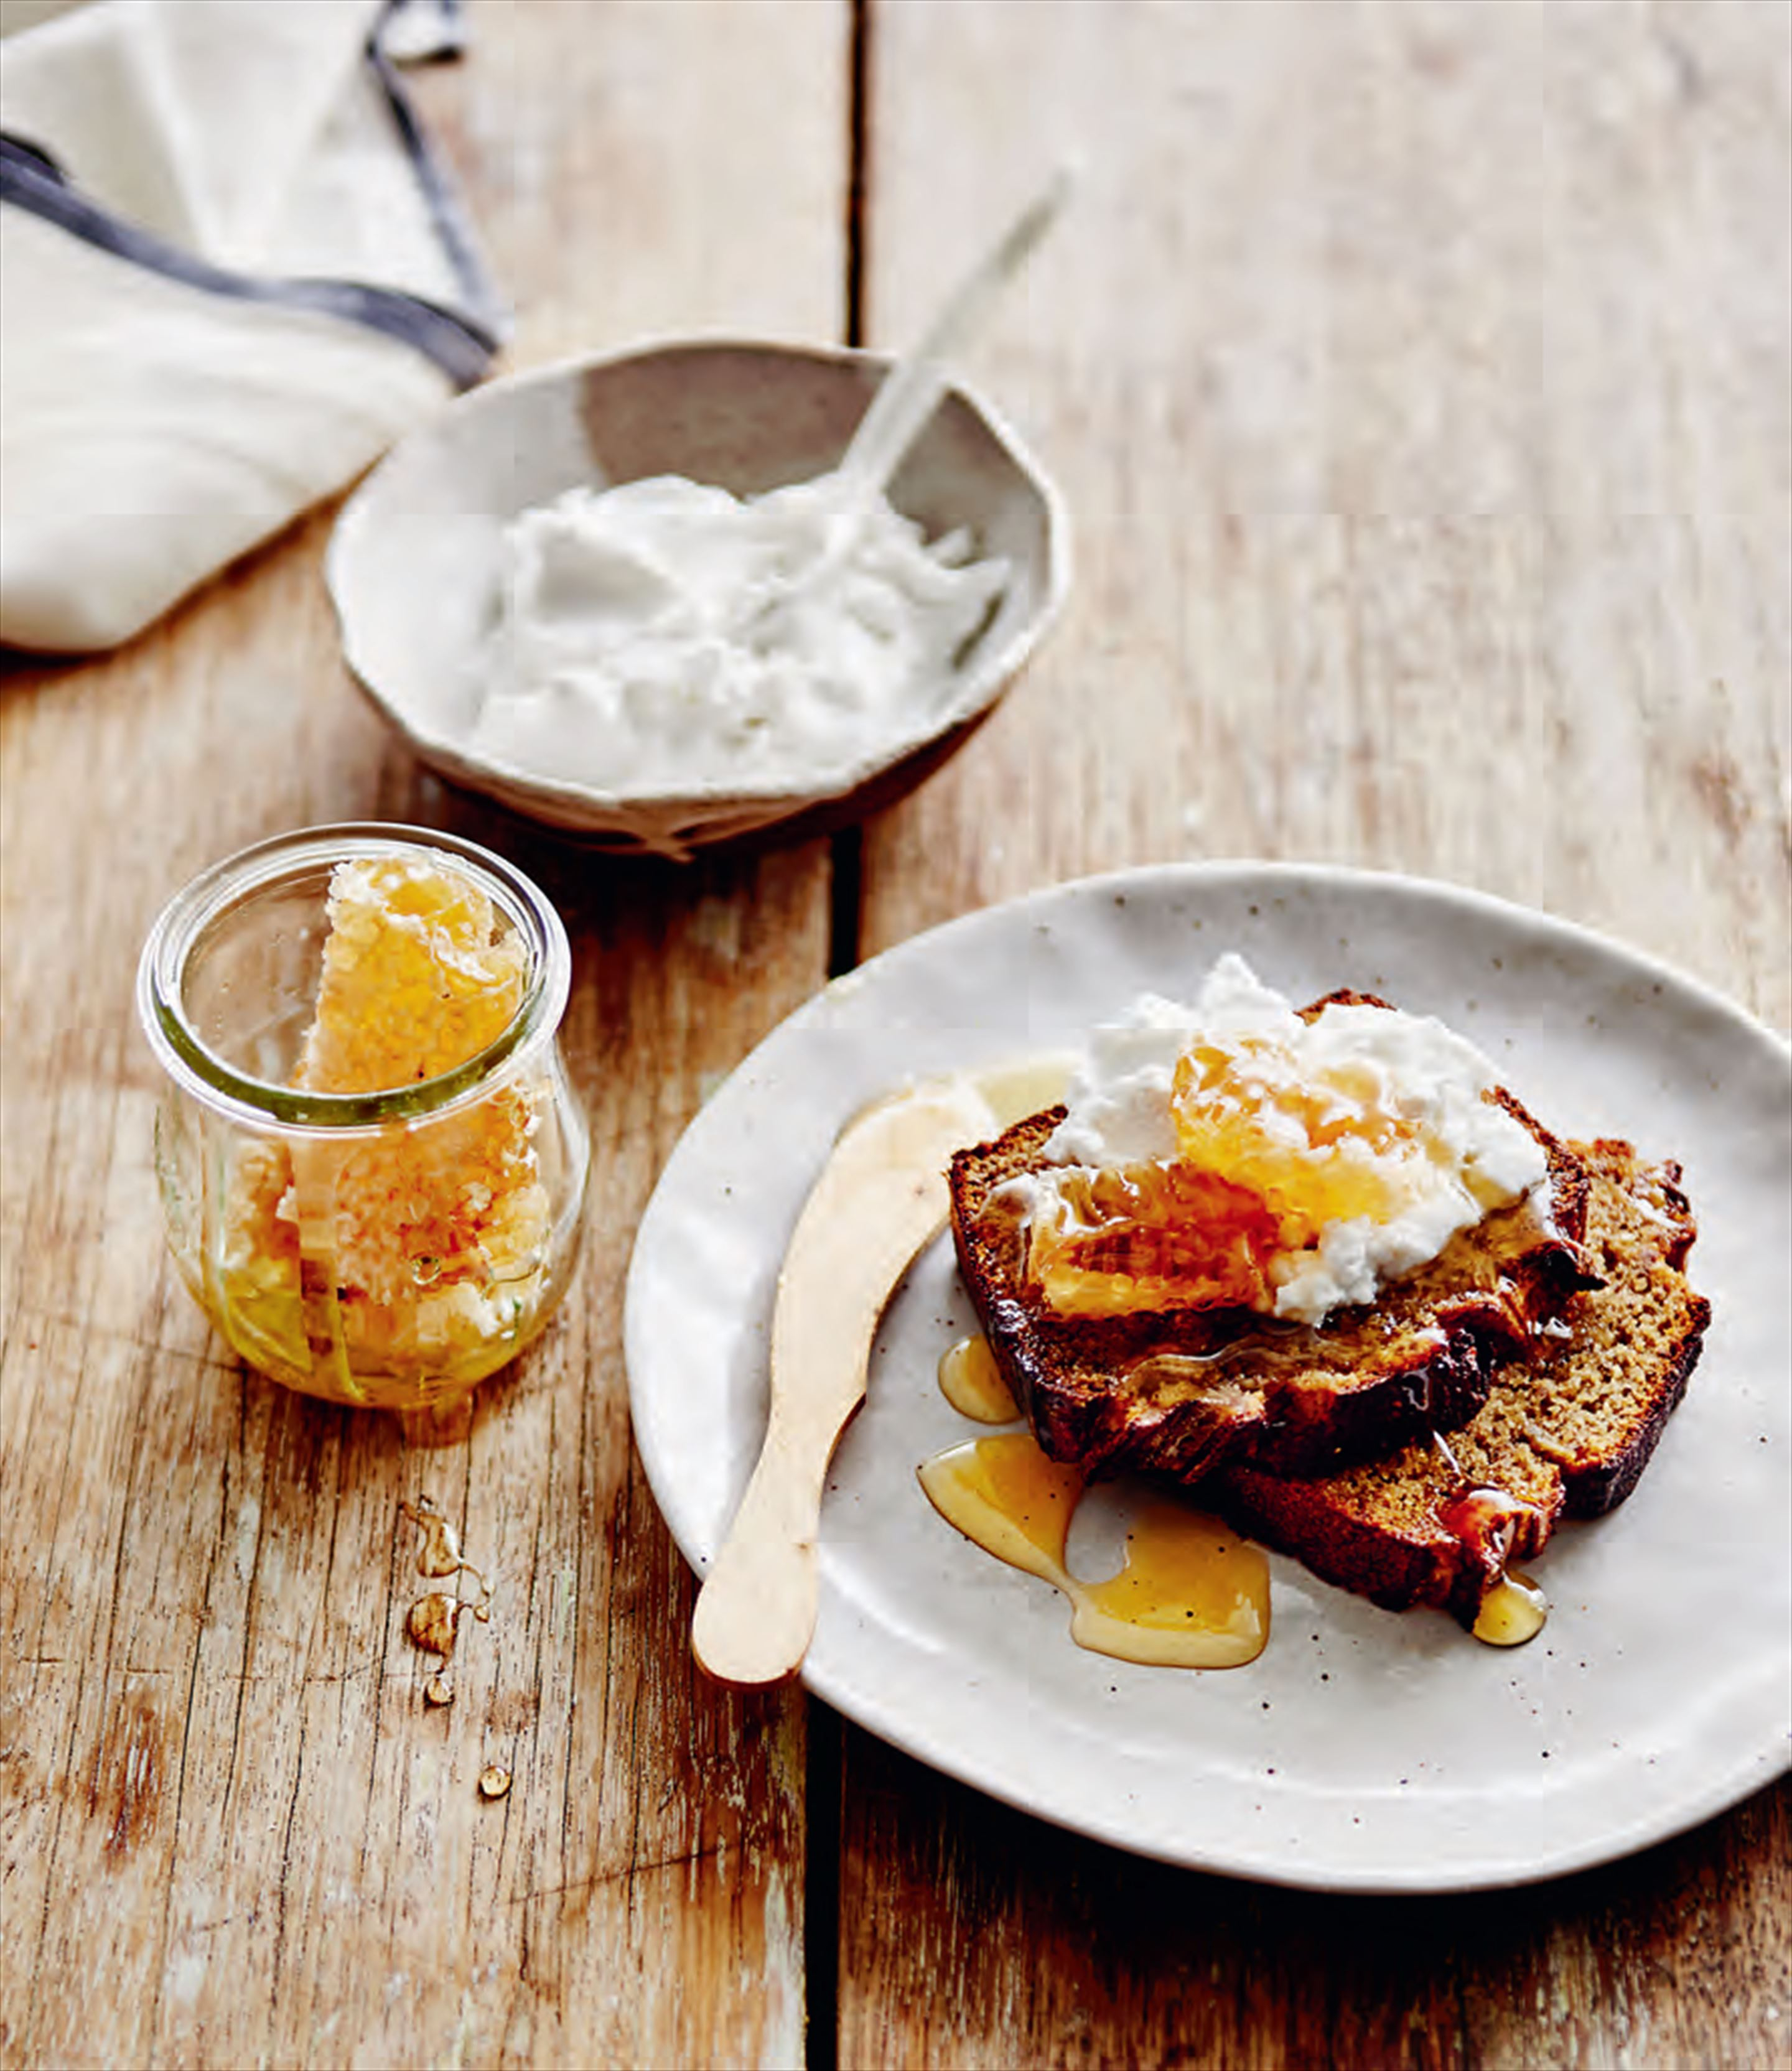 Banana, almond & chia bread with coconut yoghurt